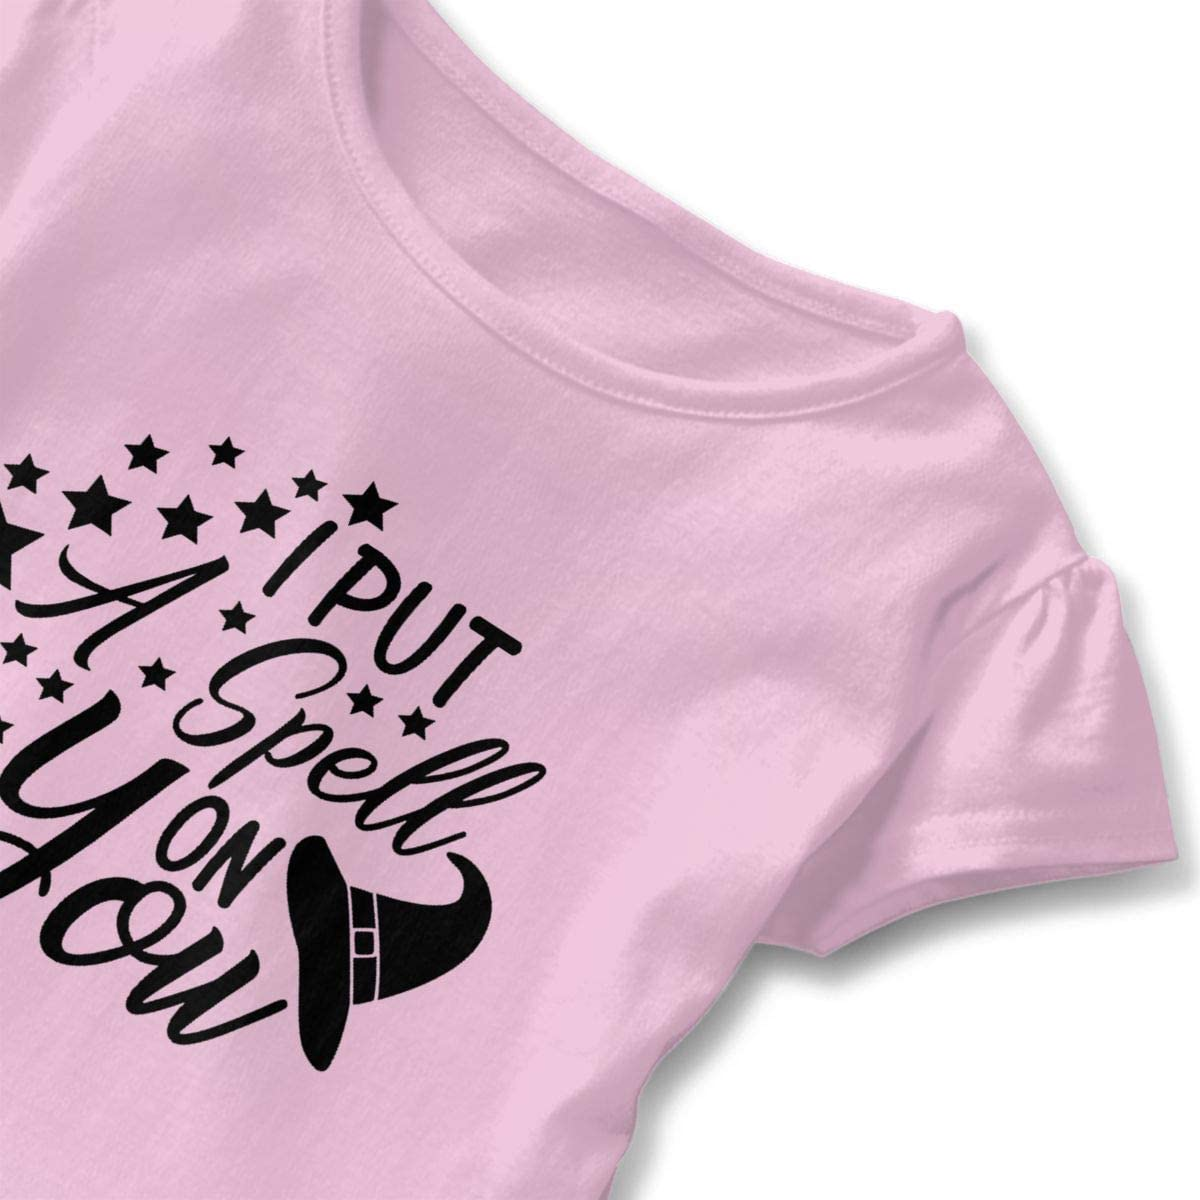 I Put A Spell On You Shirt Baby Girls Flounced Cotton Basic Shirt for 2-6 Years Old Baby